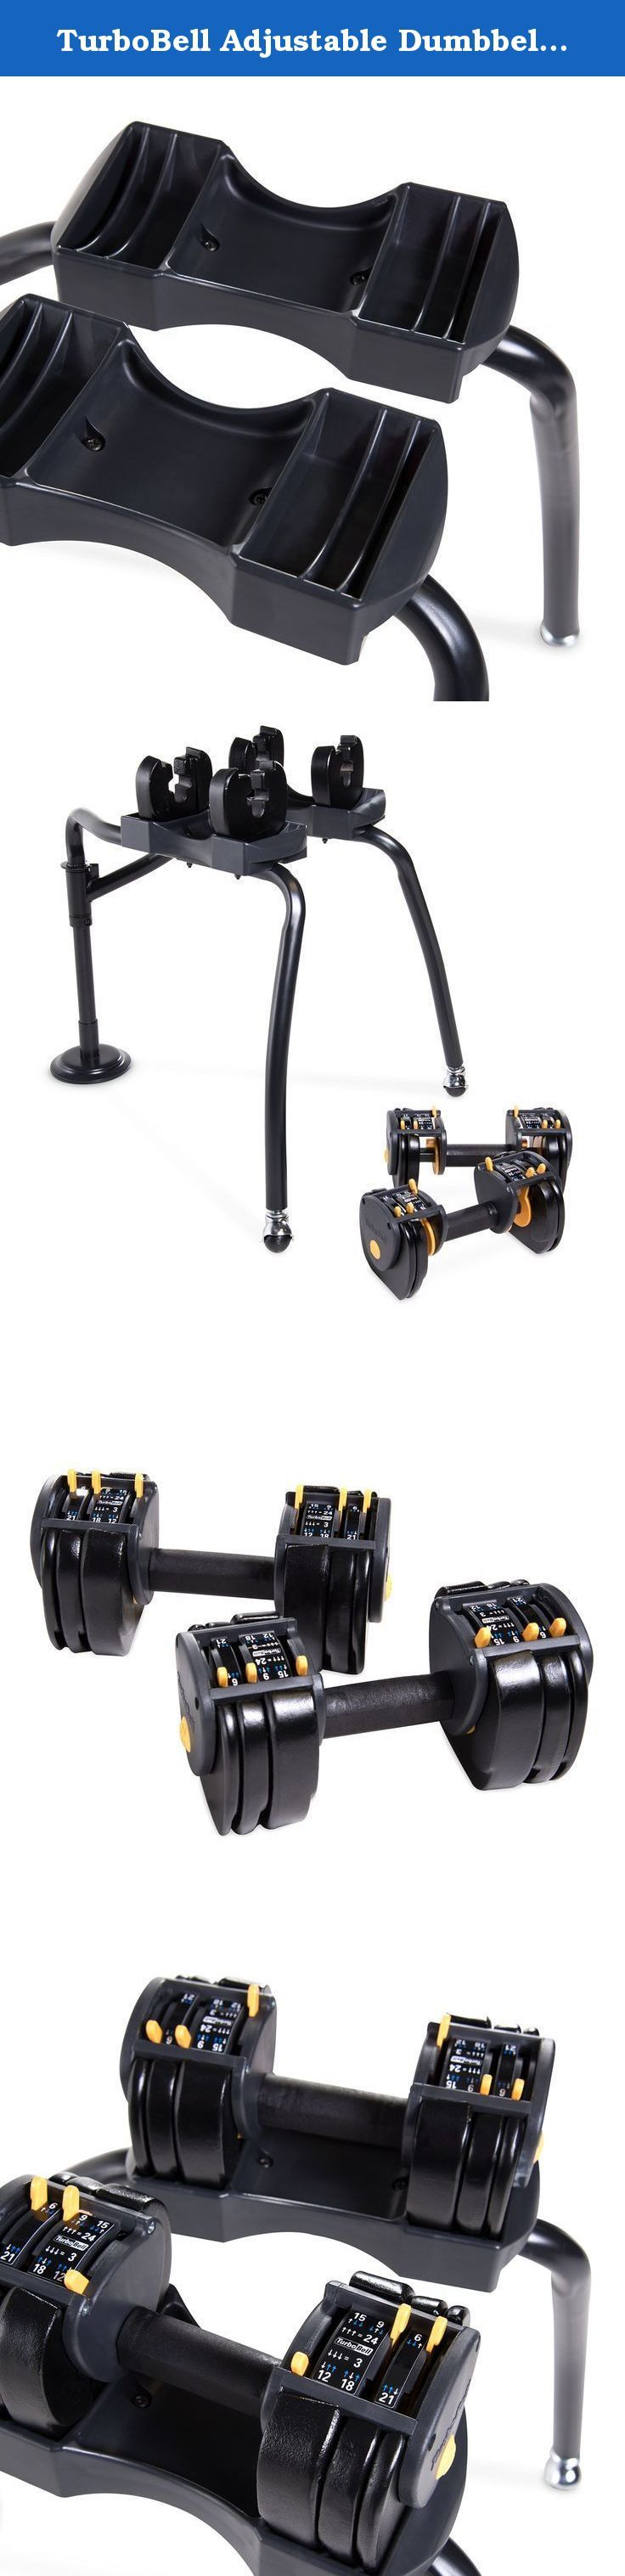 TurboBell Adjustable Dumbbell Set with Rack, 24 lb Pair. This 48 lb adjustable dumbbell set is convenient and great for both beginners and the advanced fitness enthusiast. Each dumbbell has a max weight of 24 lbs, and can be adjusted down to just 3 lbs. Also included is a dumbbells stand, which can be easily moved around.